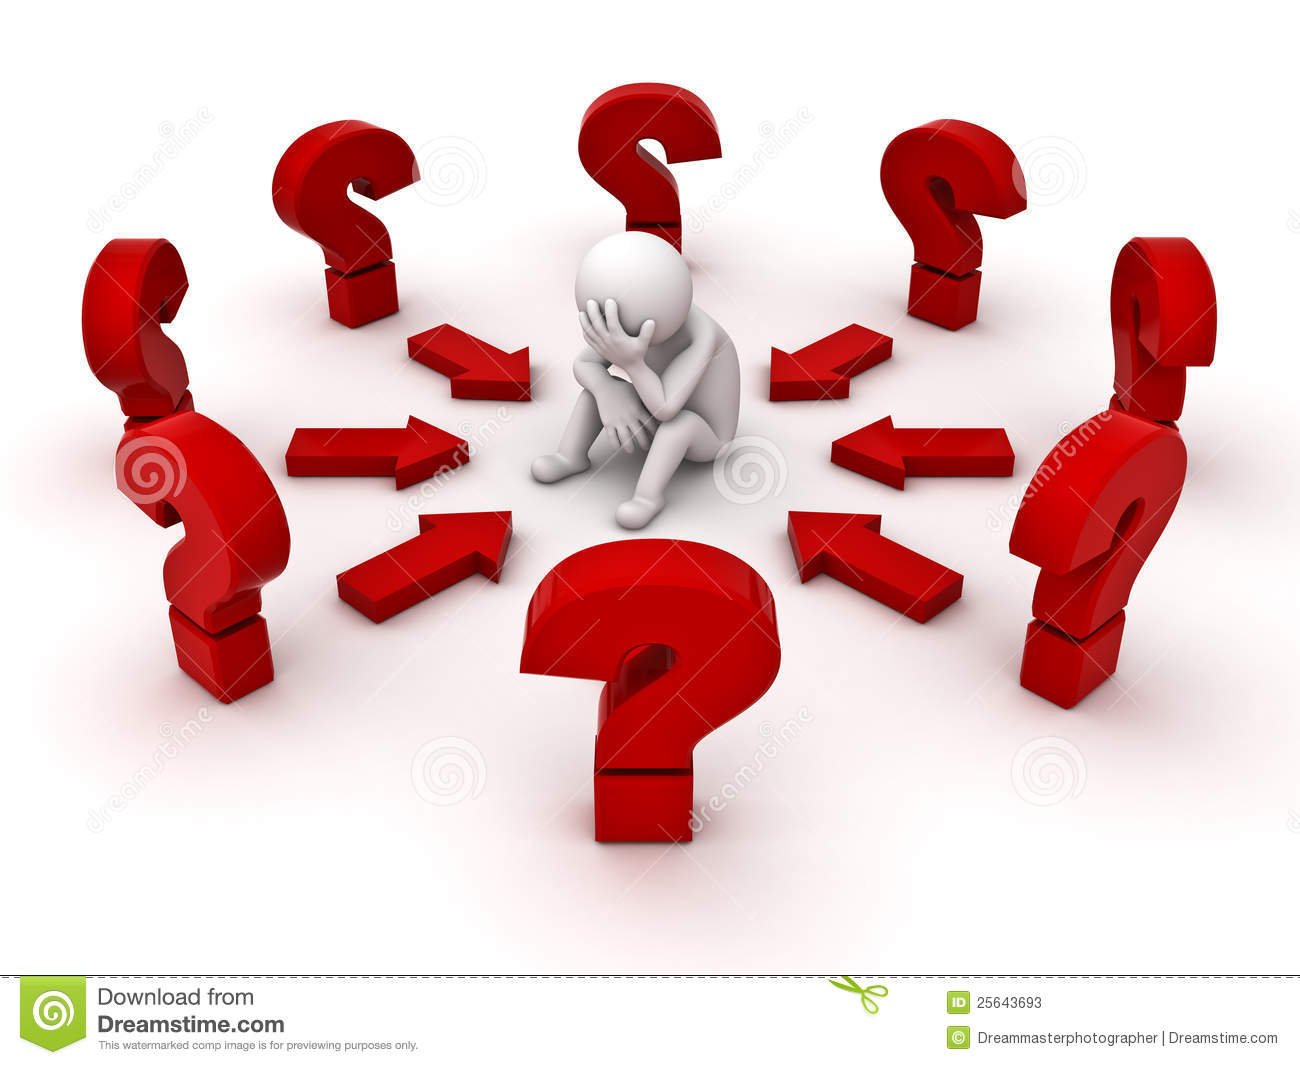 Stressed 3d man sitting amongst red question marks on white background ...